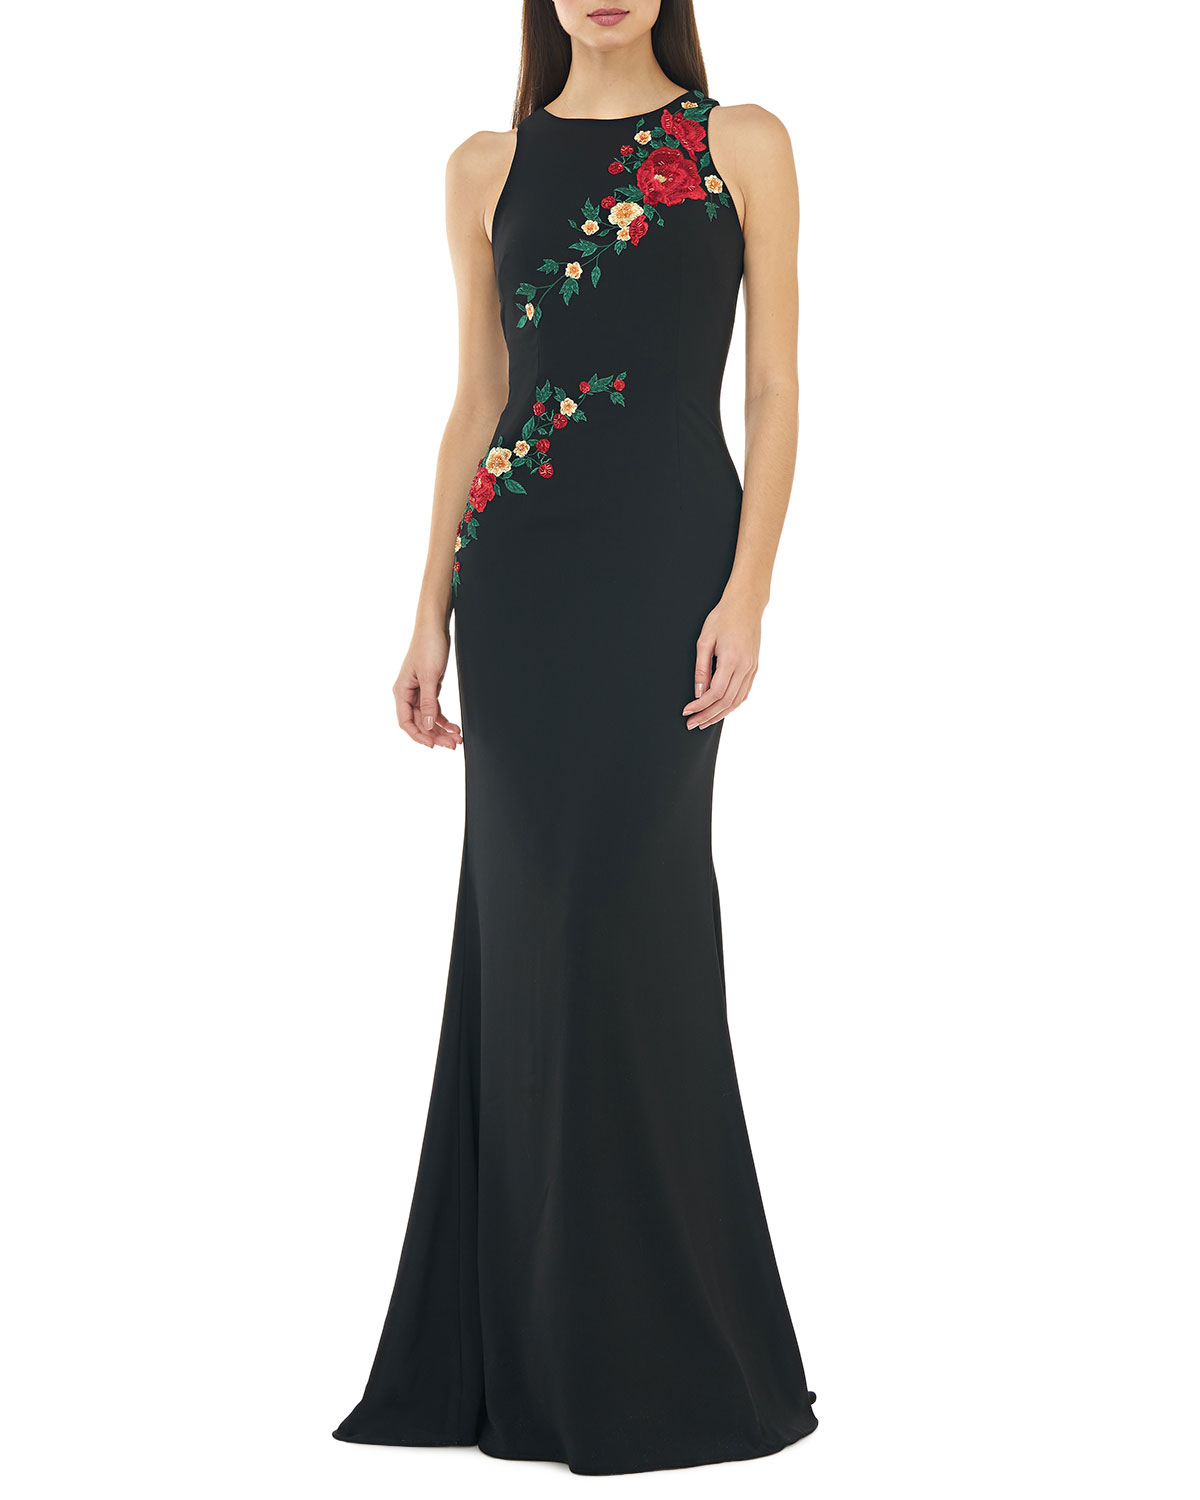 Sleeveless Crepe Mermaid Gown w/ Multi Floral Embroidery